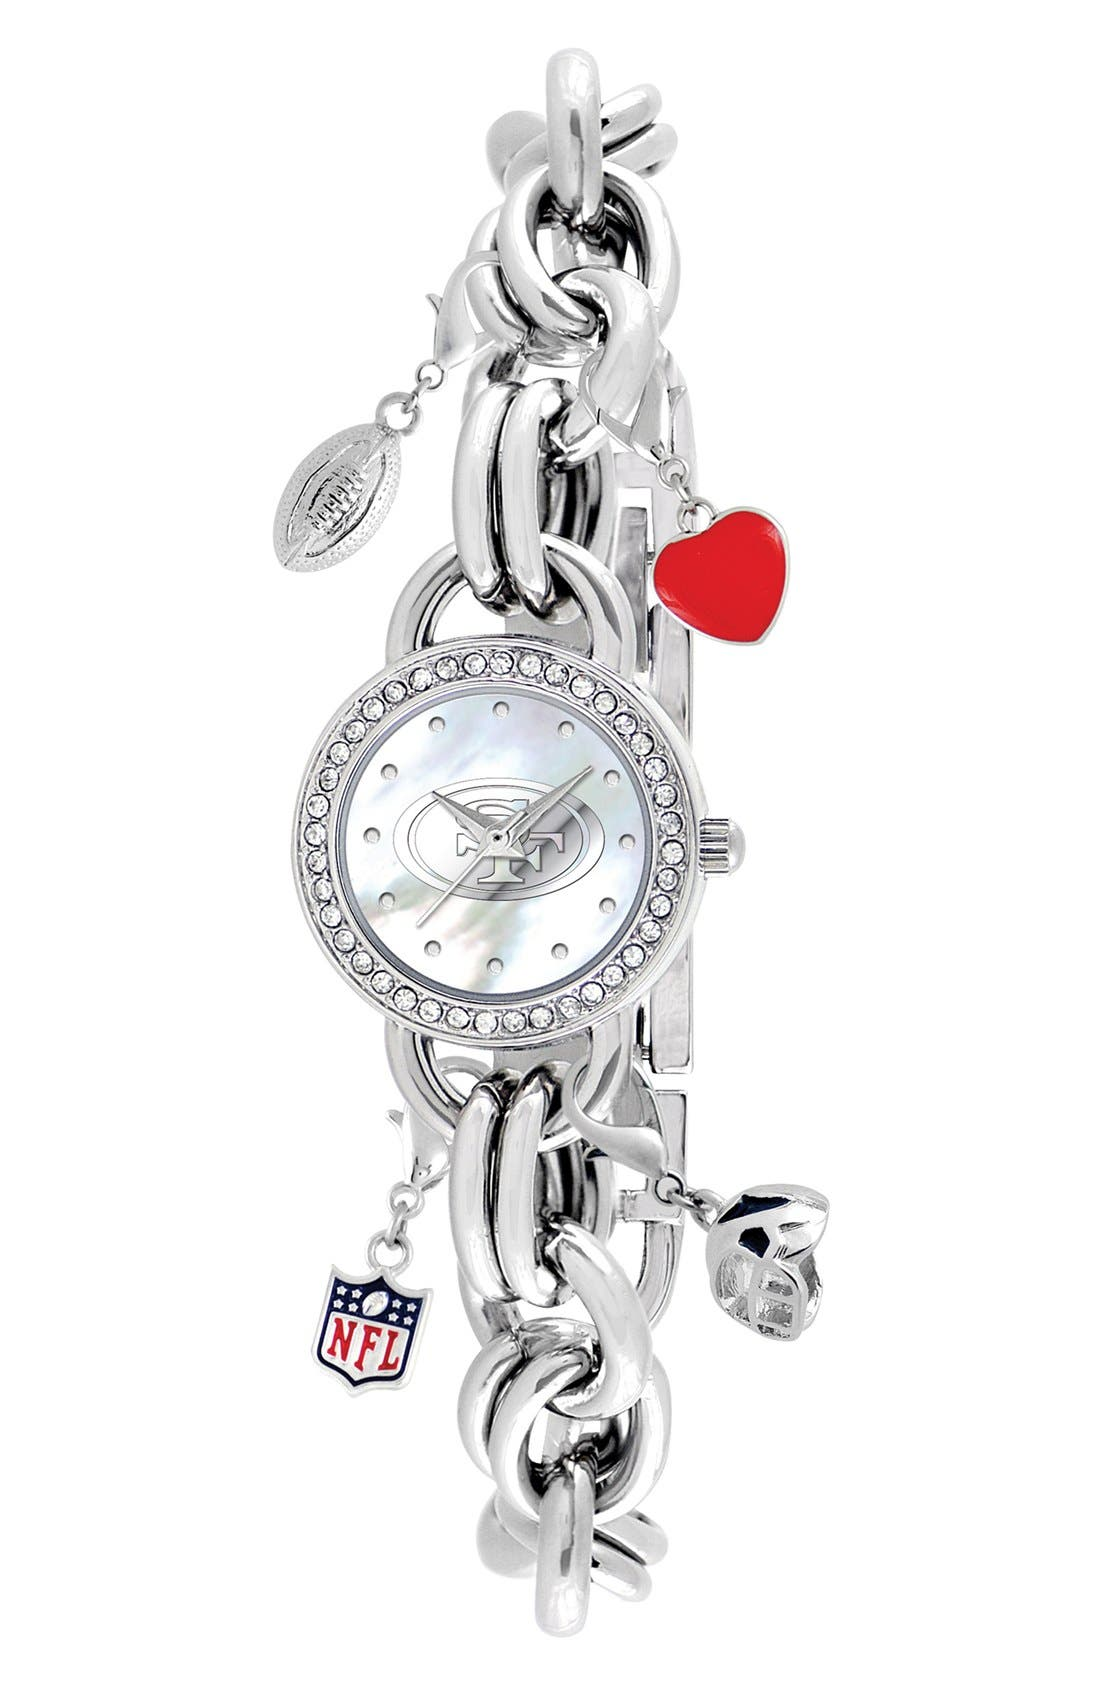 Alternate Image 1 Selected - Game Time Watches 'NFL - San Francisco 49ers' Charm Bracelet Watch, 23mm